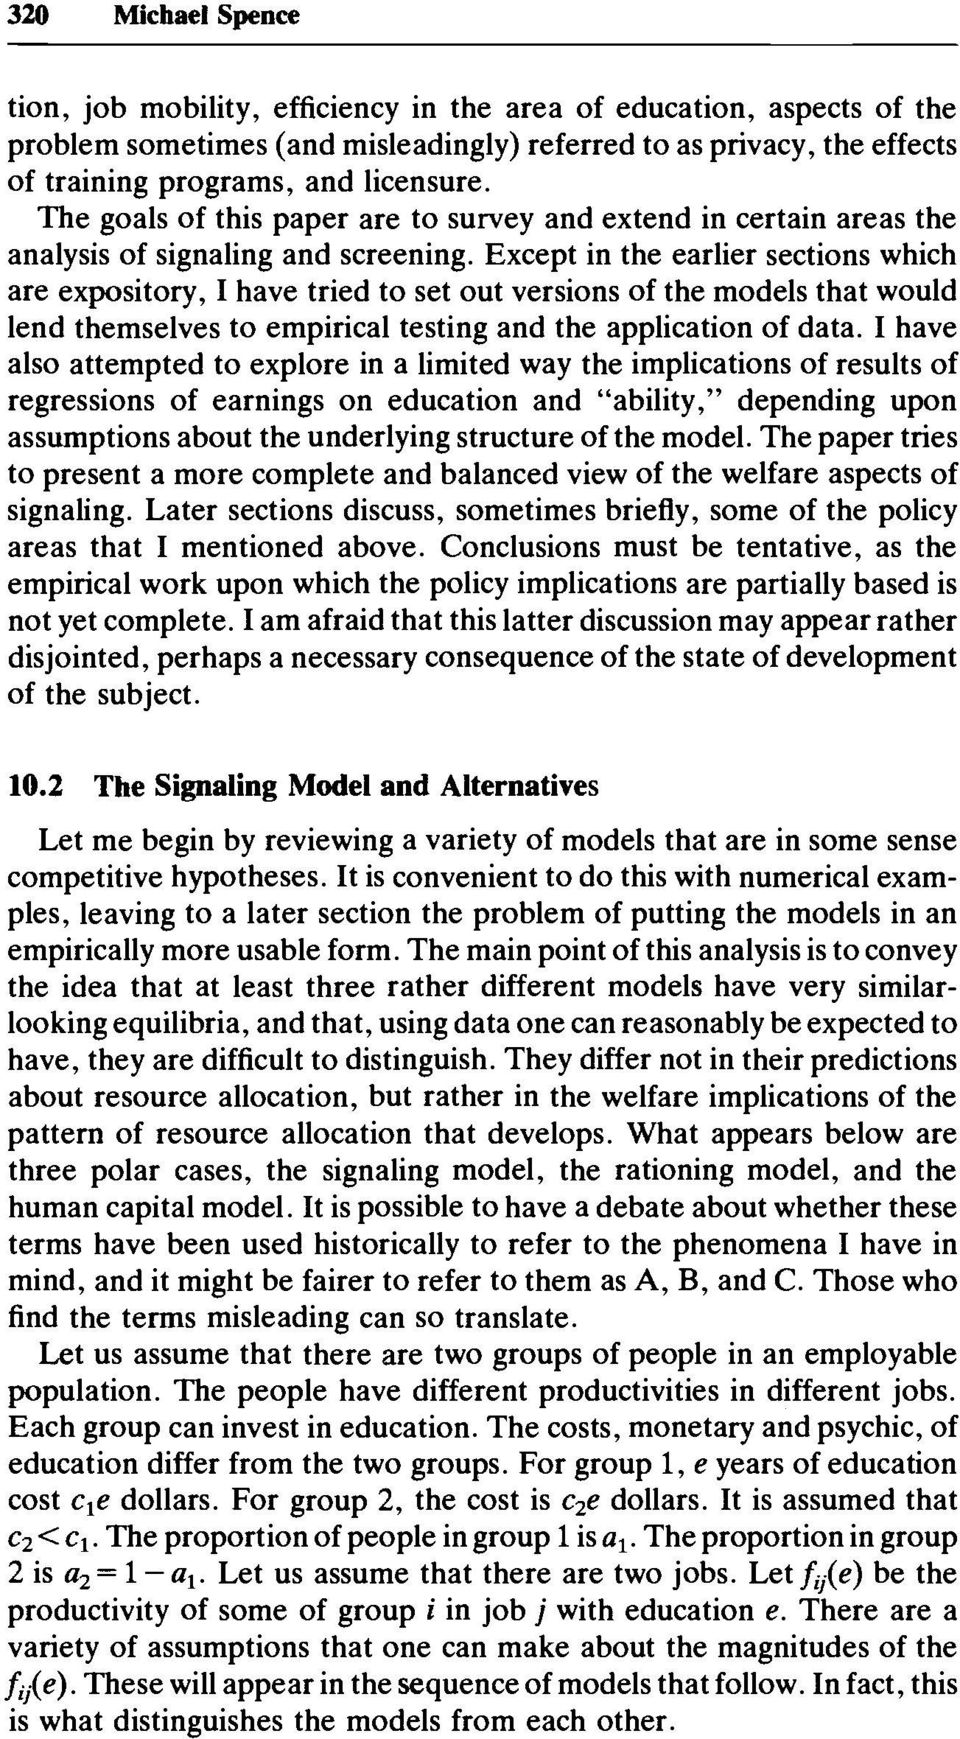 Except in the earlier sections which are expository, I have tried to set out versions of the models that would lend themselves to empirical testing and the application of data.